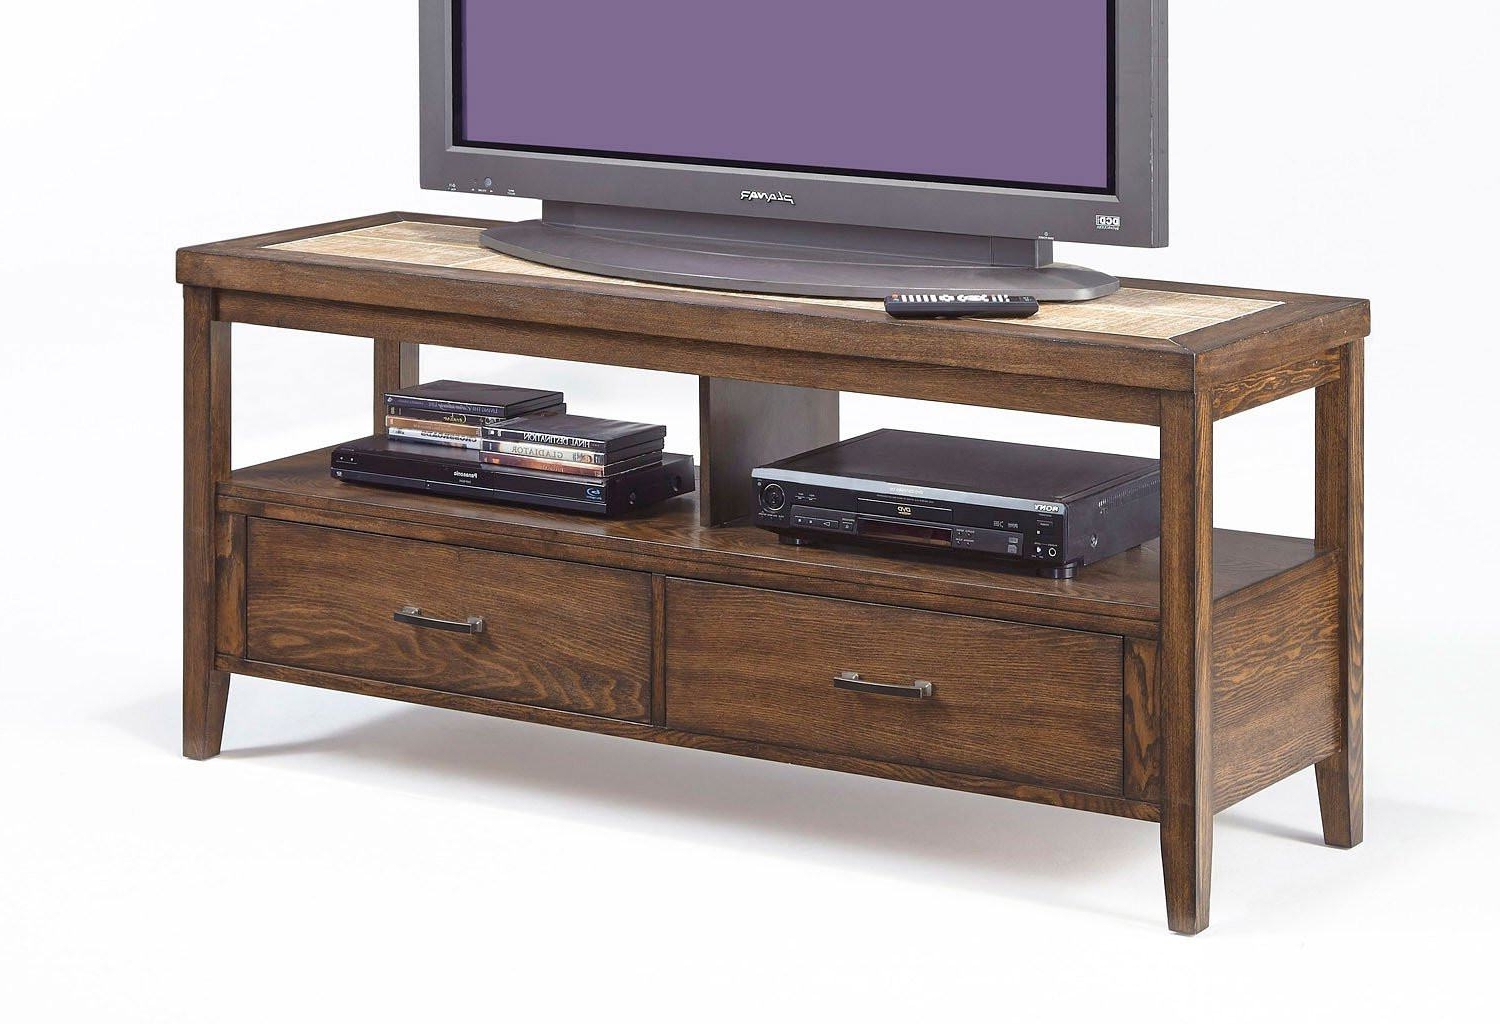 25 Creative 54 Inch Tv Stand Pictures | Cakestandlady With Regard To Sinclair Blue 54 Inch Tv Stands (View 4 of 20)